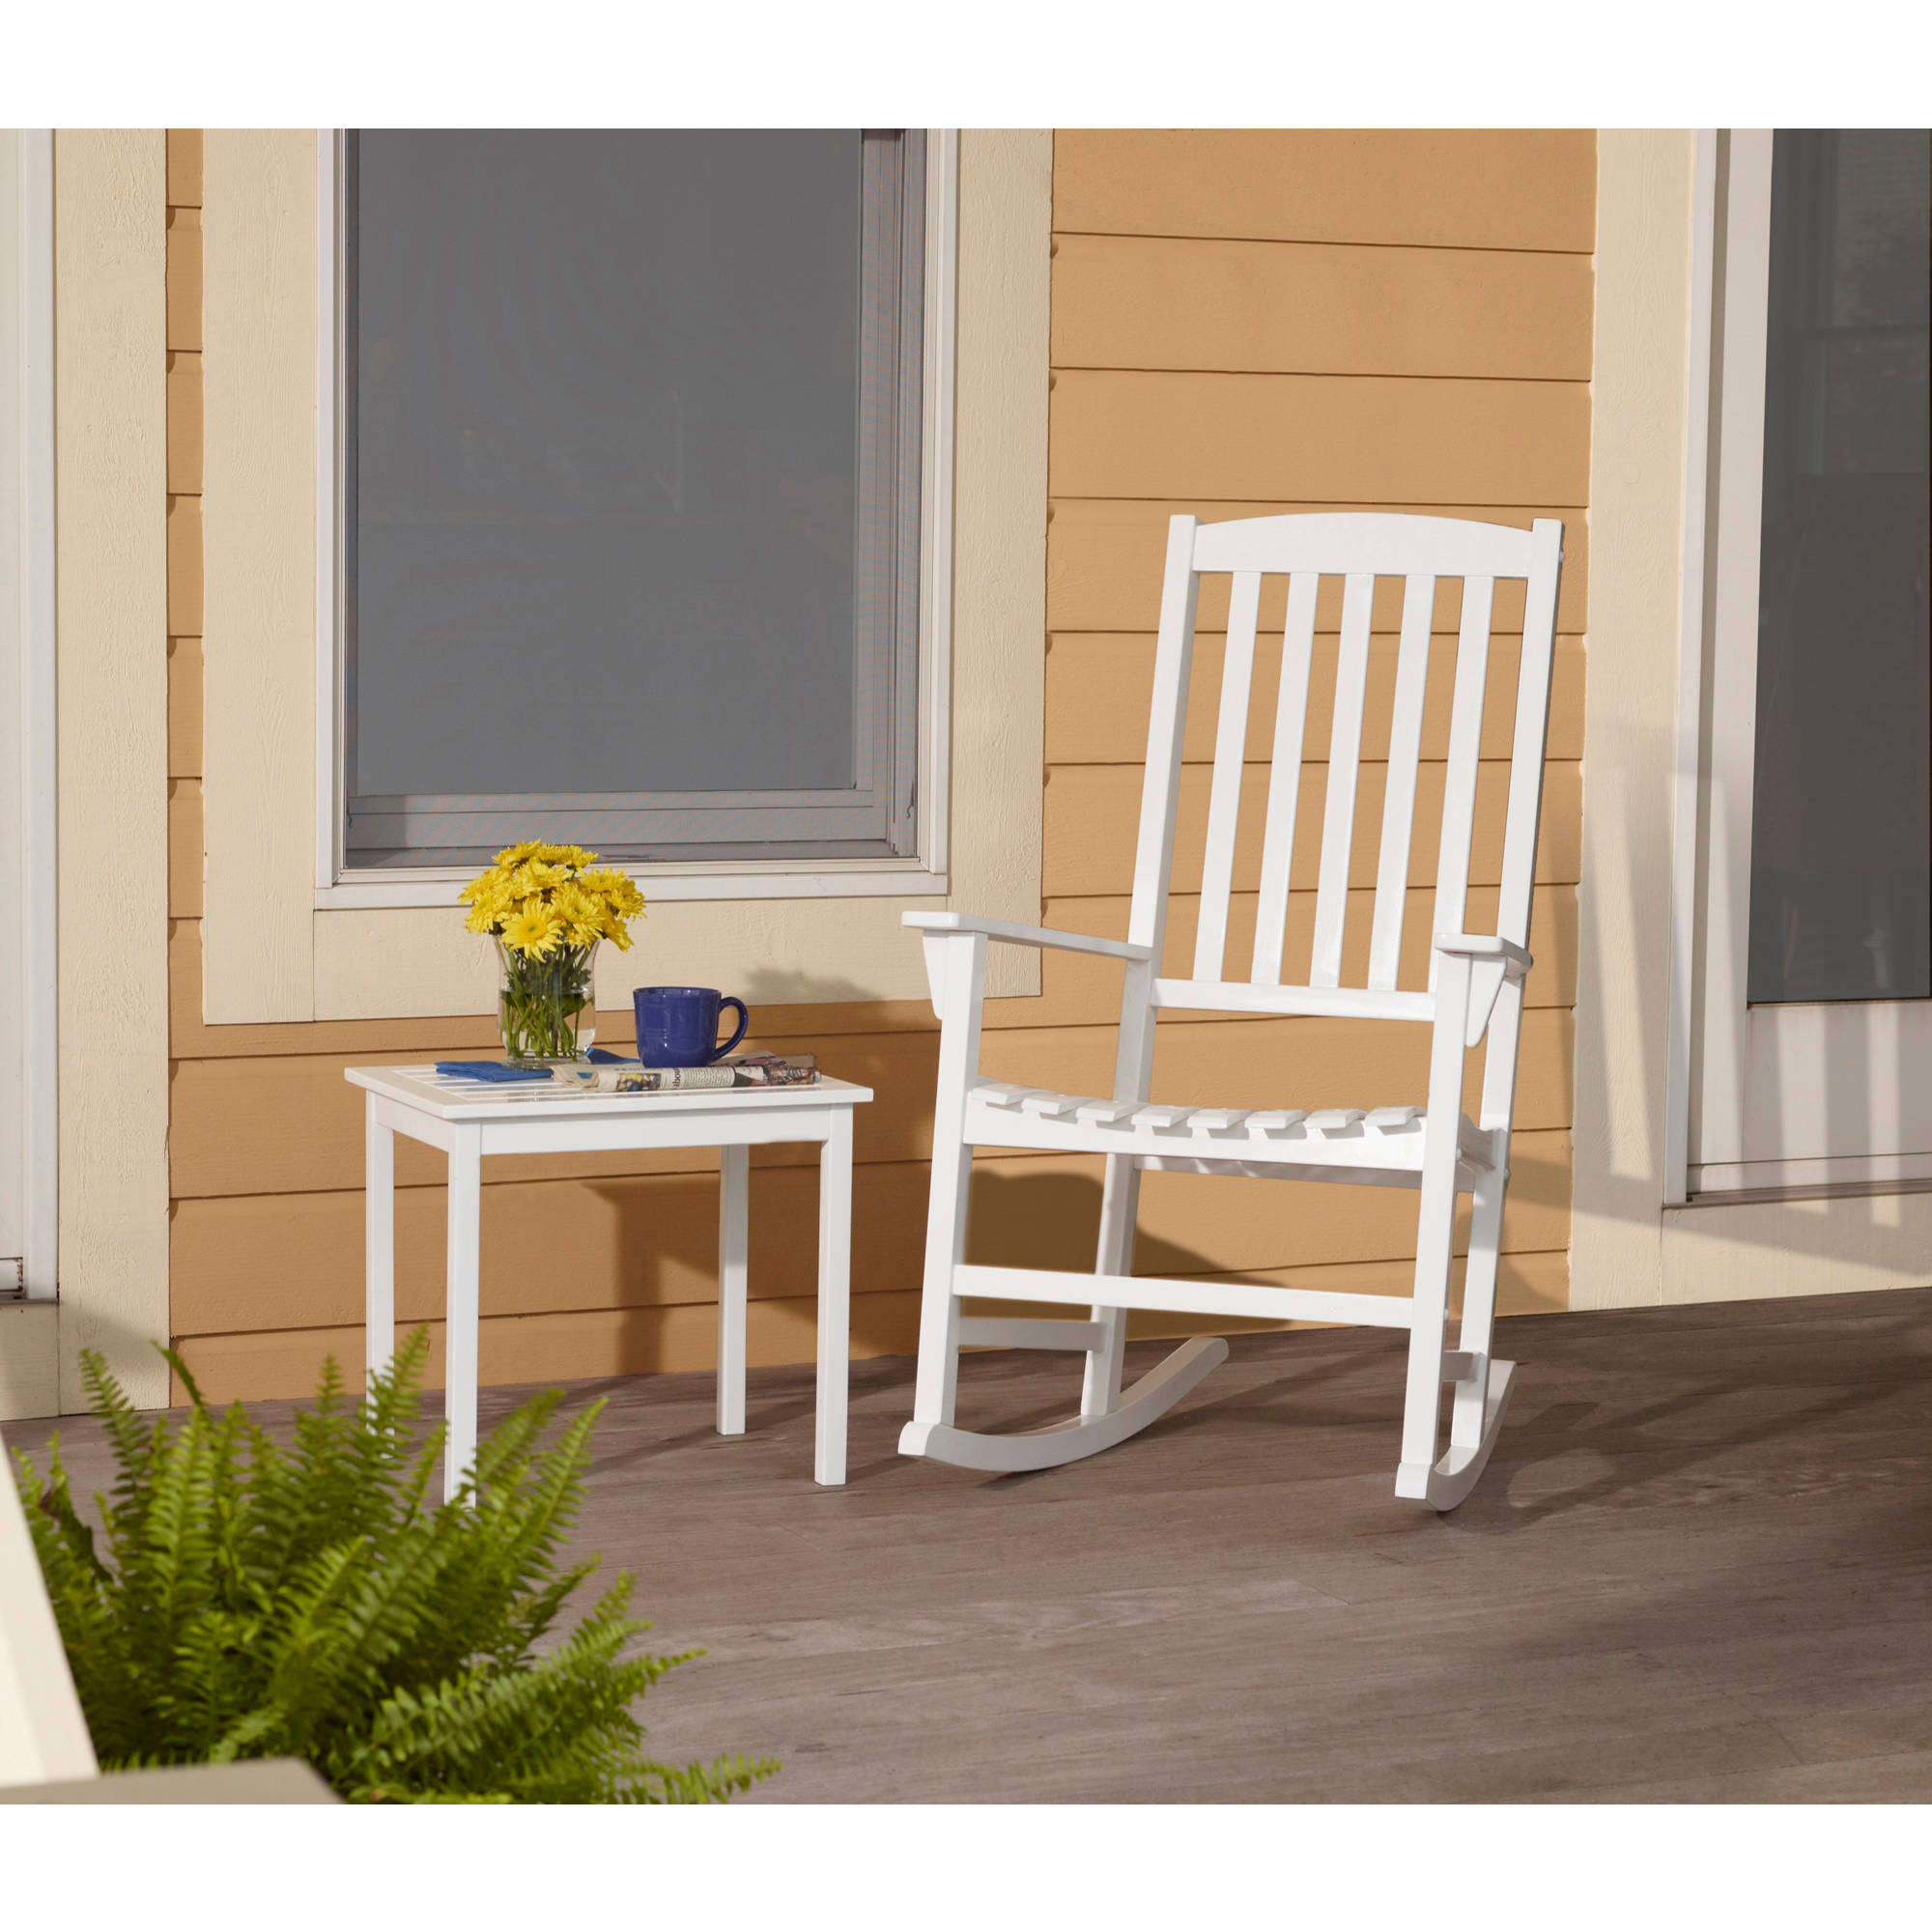 Mainstays Outdoor Rocking Chair Multiple Colors Walmart